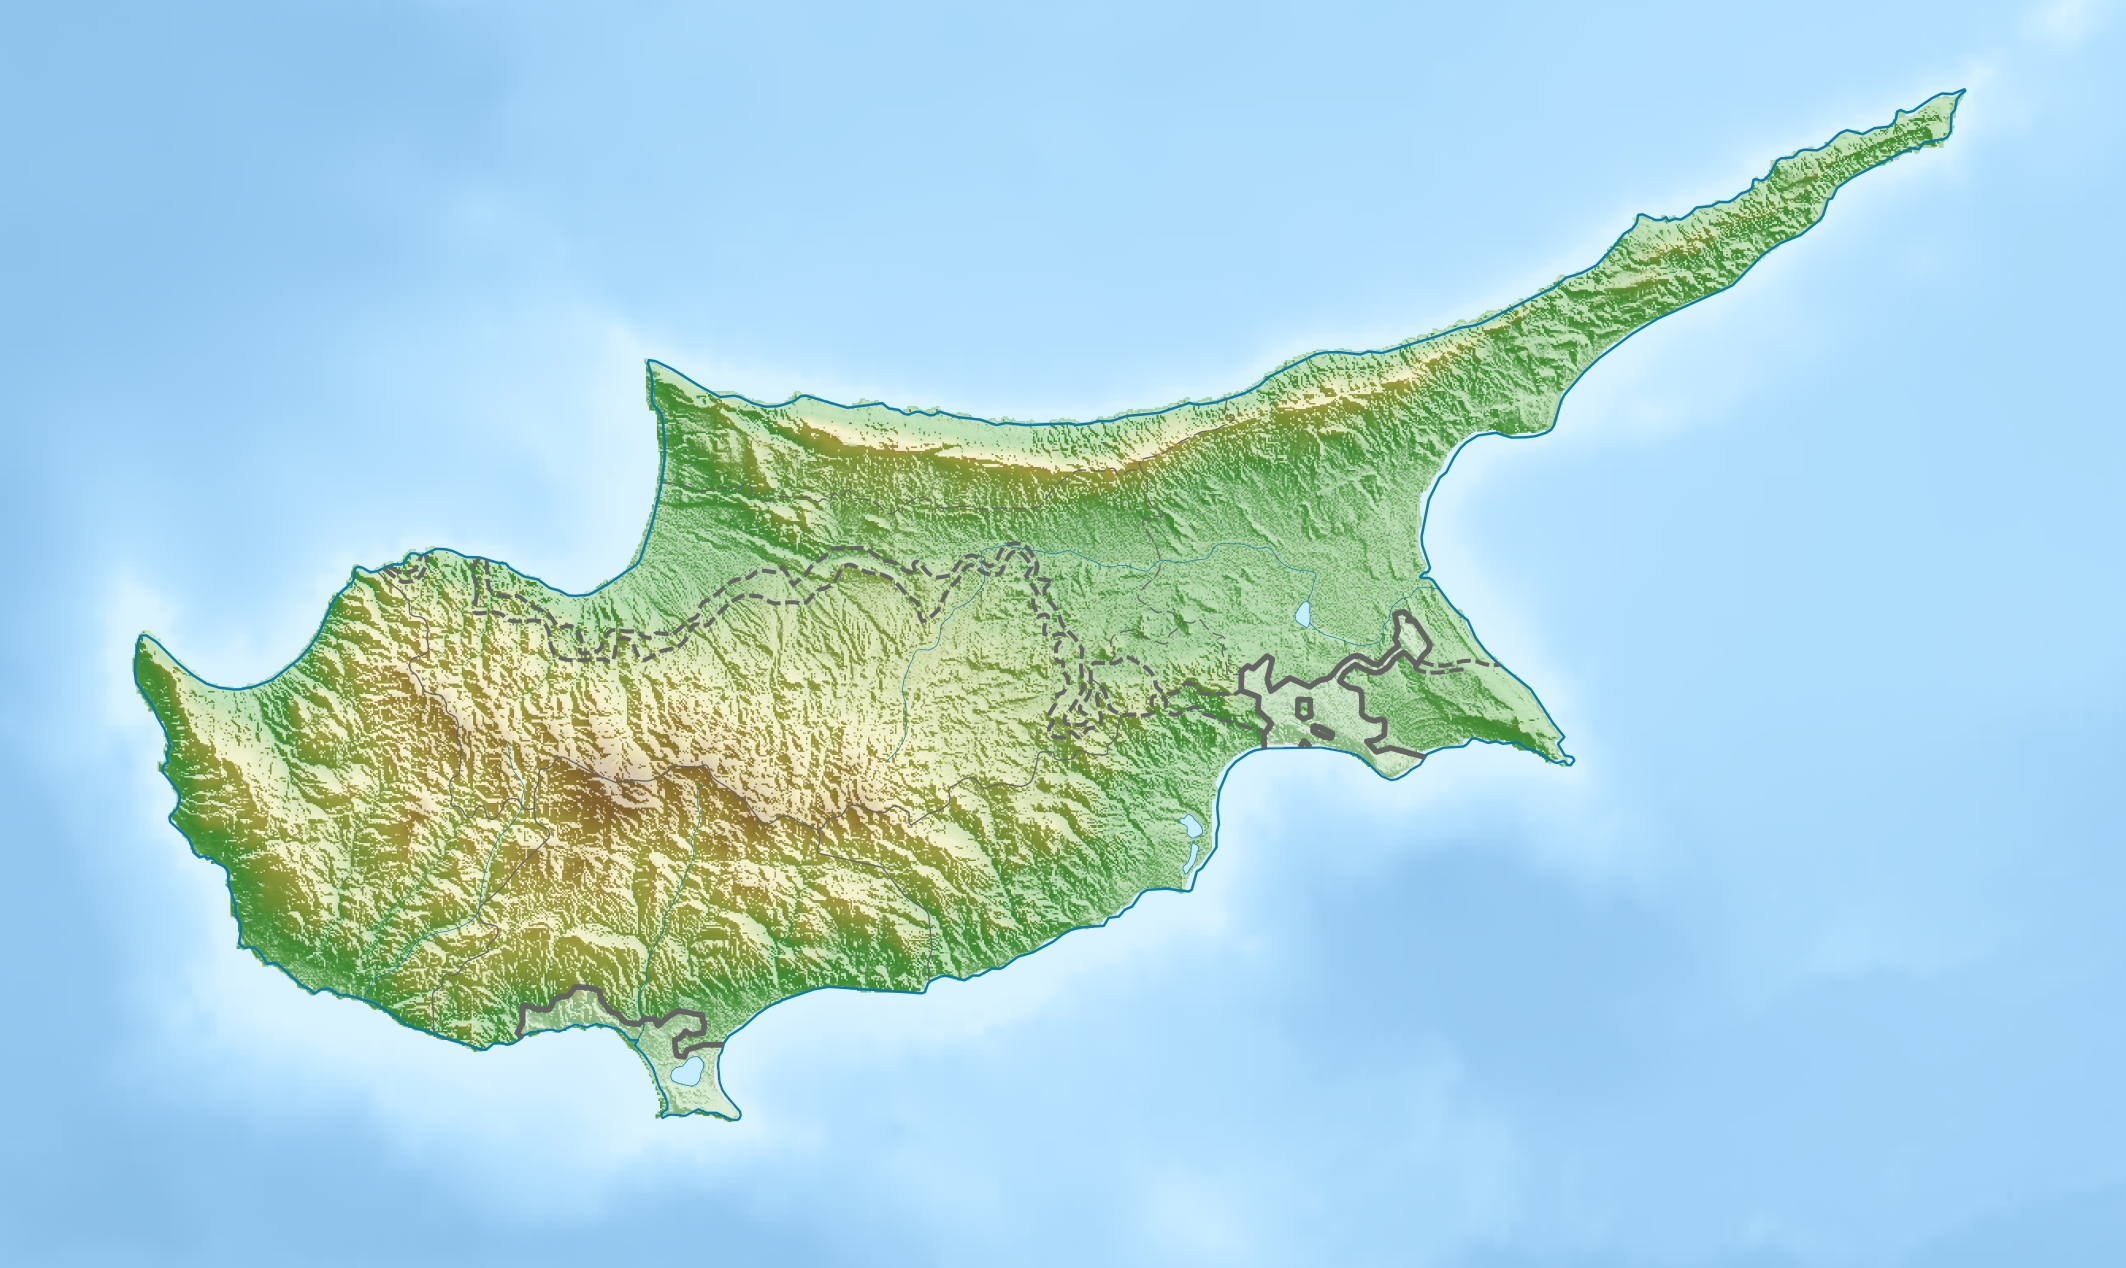 Cyprus relief location map